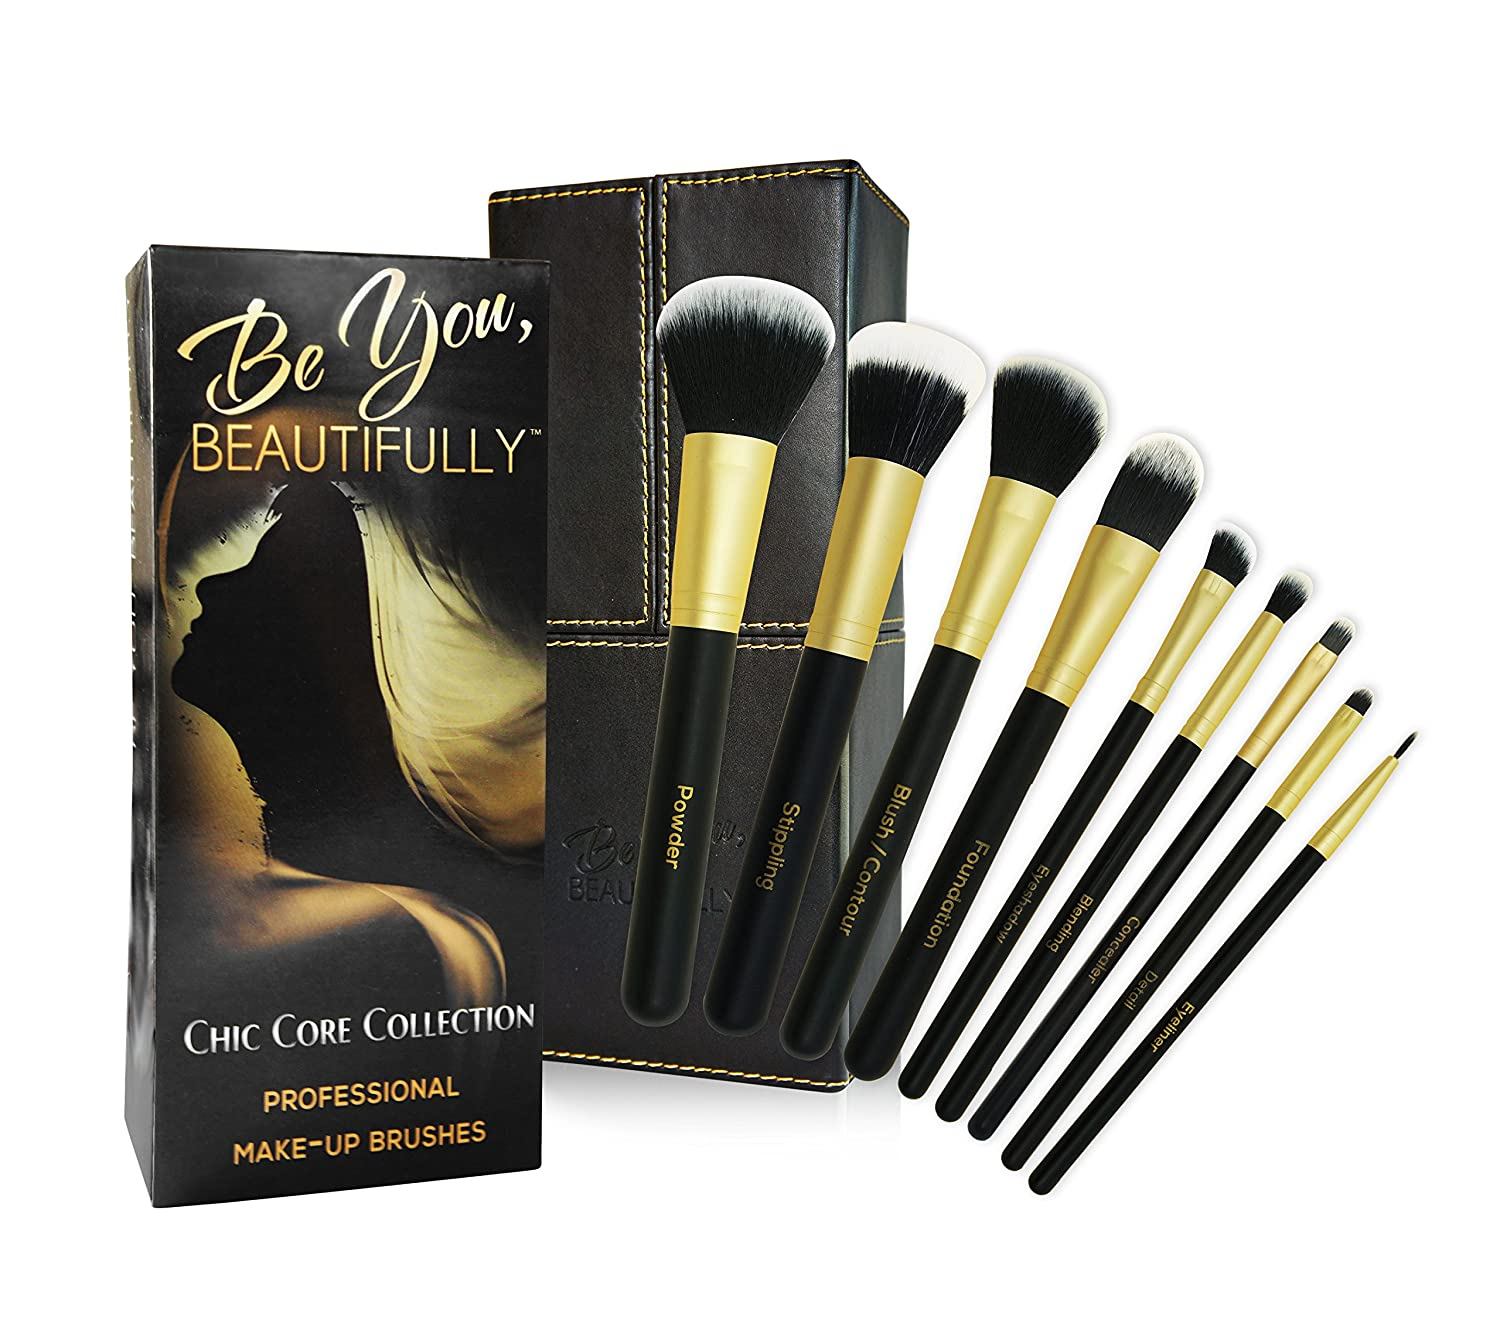 BEST SELLING Professional 8 Piece Makeup Brush Set with Designer Case Plus BONUS Stippling Brush. Hand-Made Powder, Foundation, Concealer, Eye Shadow Brushes and More. Professionally Endorsed